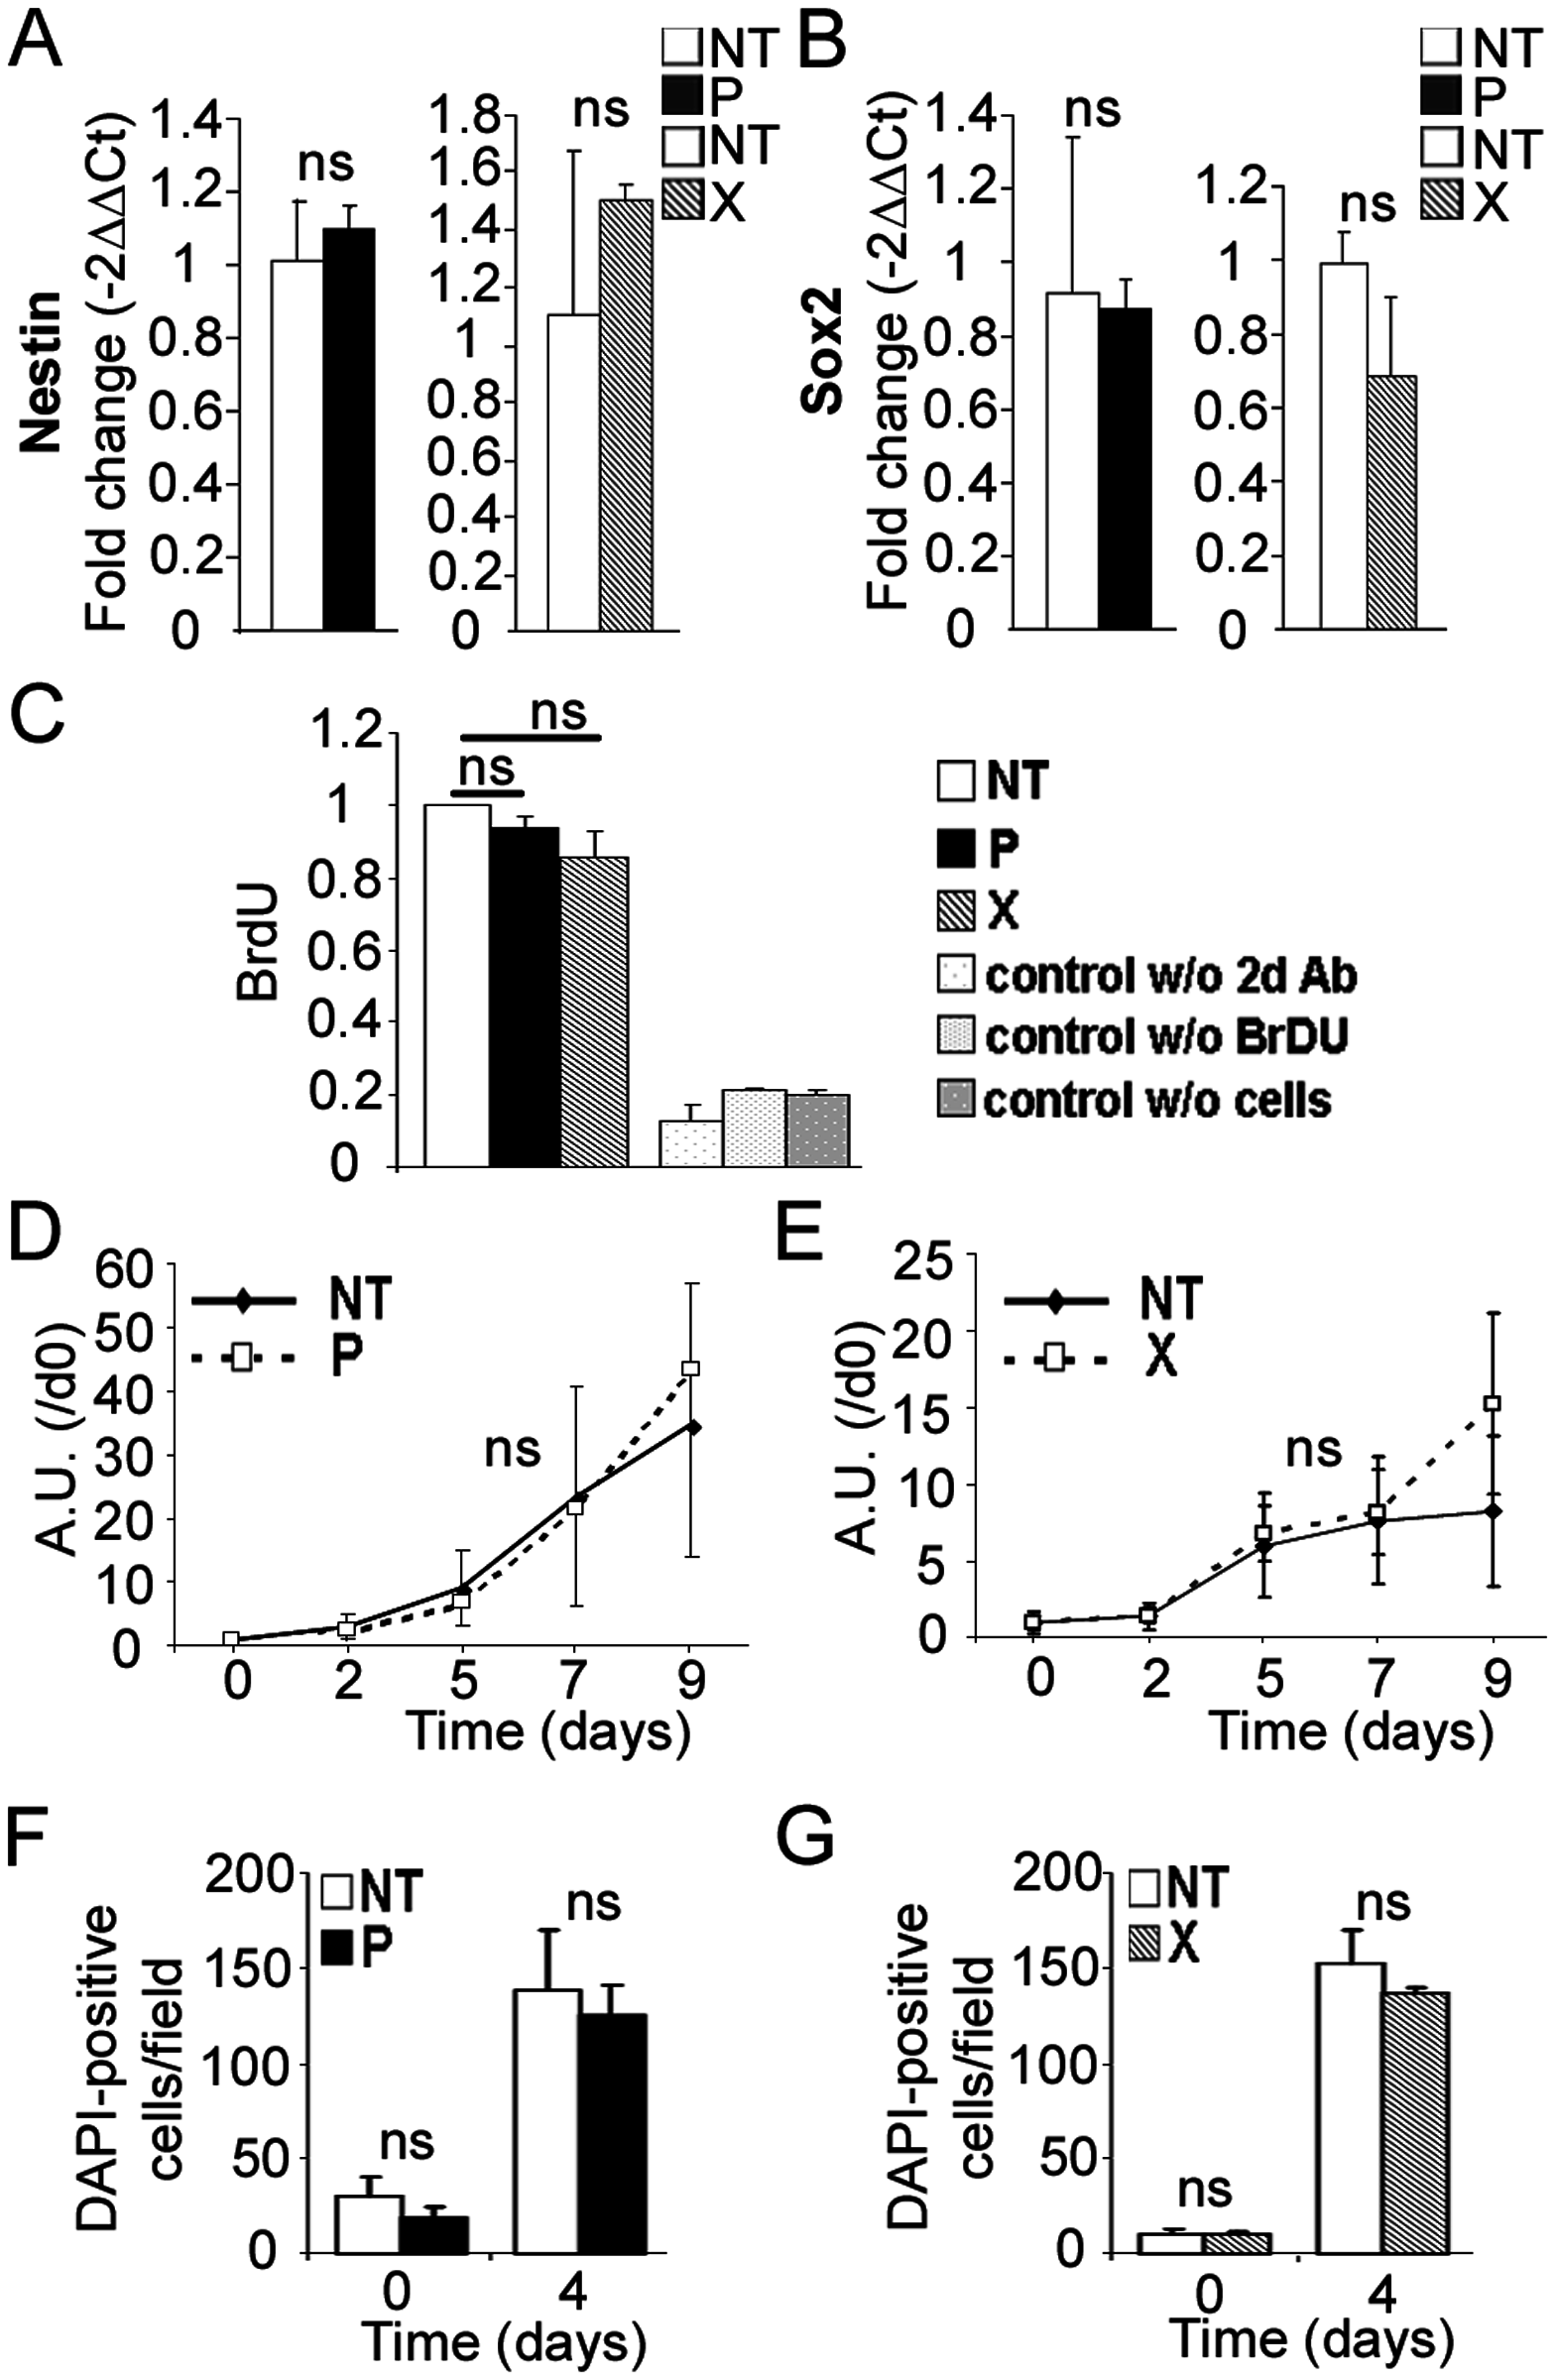 Expression of <i>bdv-p</i> or <i>bdv-x</i> gene does not alter hNPCs at the undifferentiated stage.